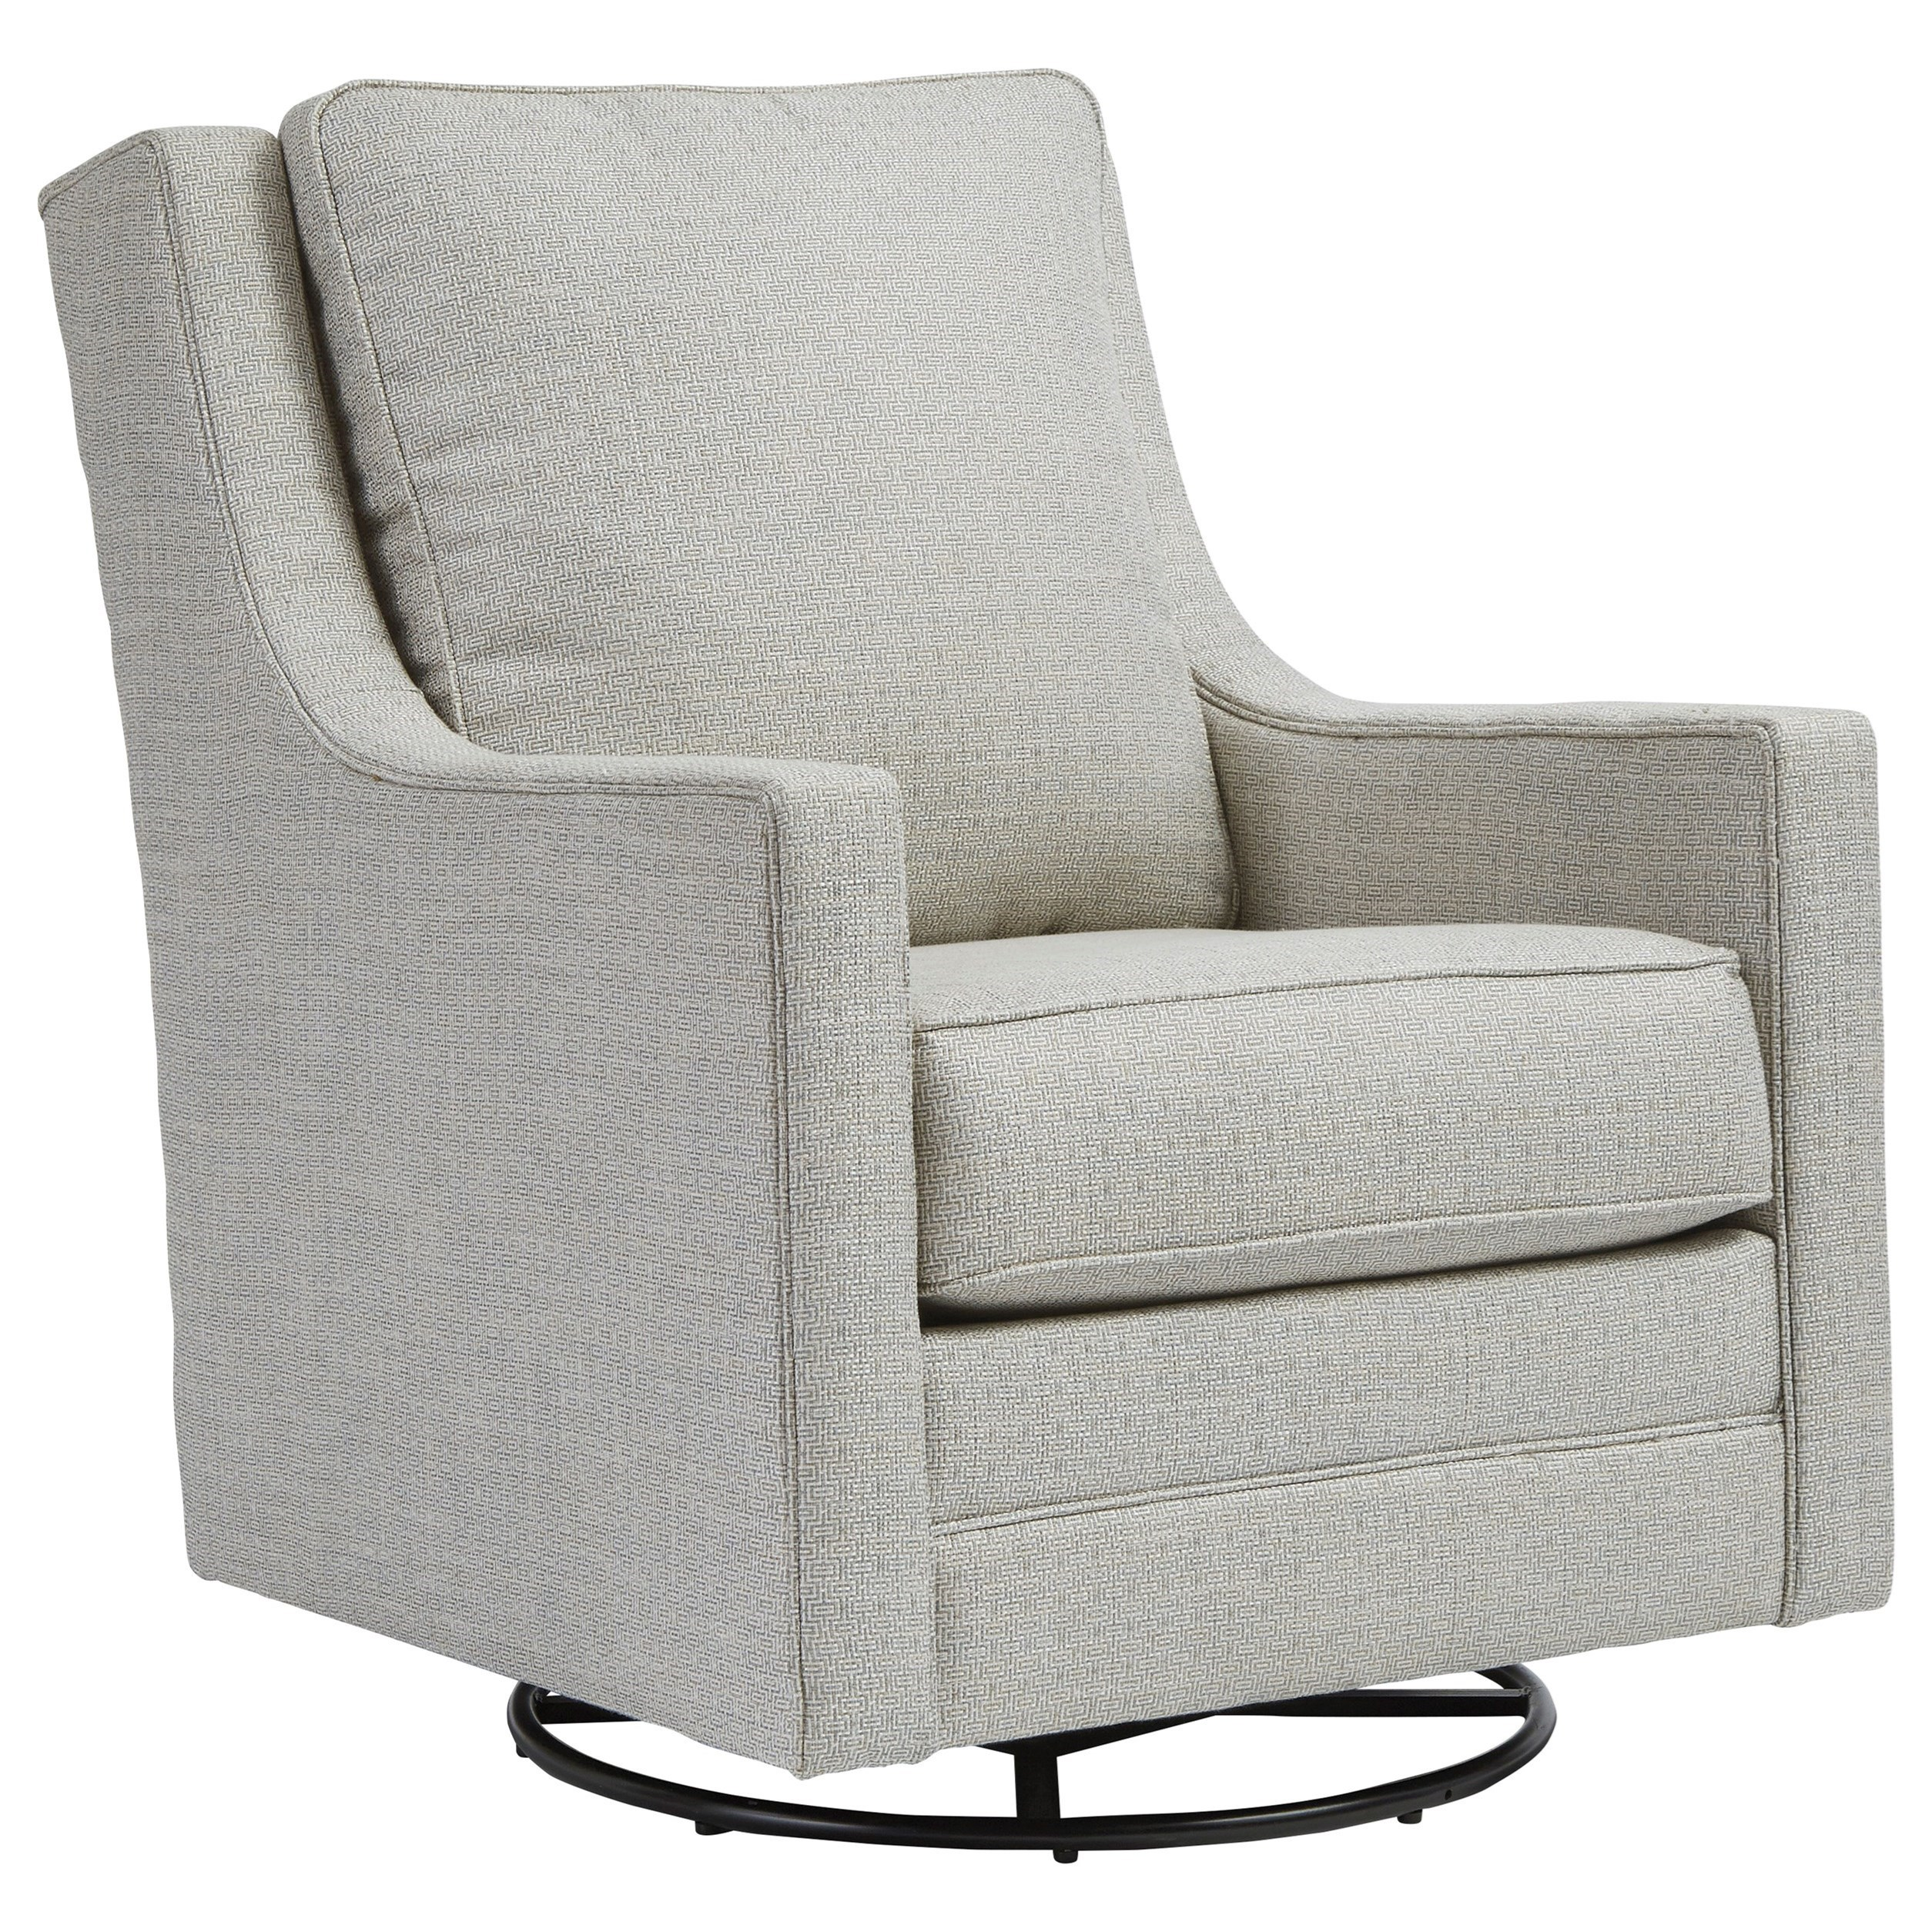 Kambria Swivel Glider Accent Chair by Signature Design by Ashley at Beds N Stuff